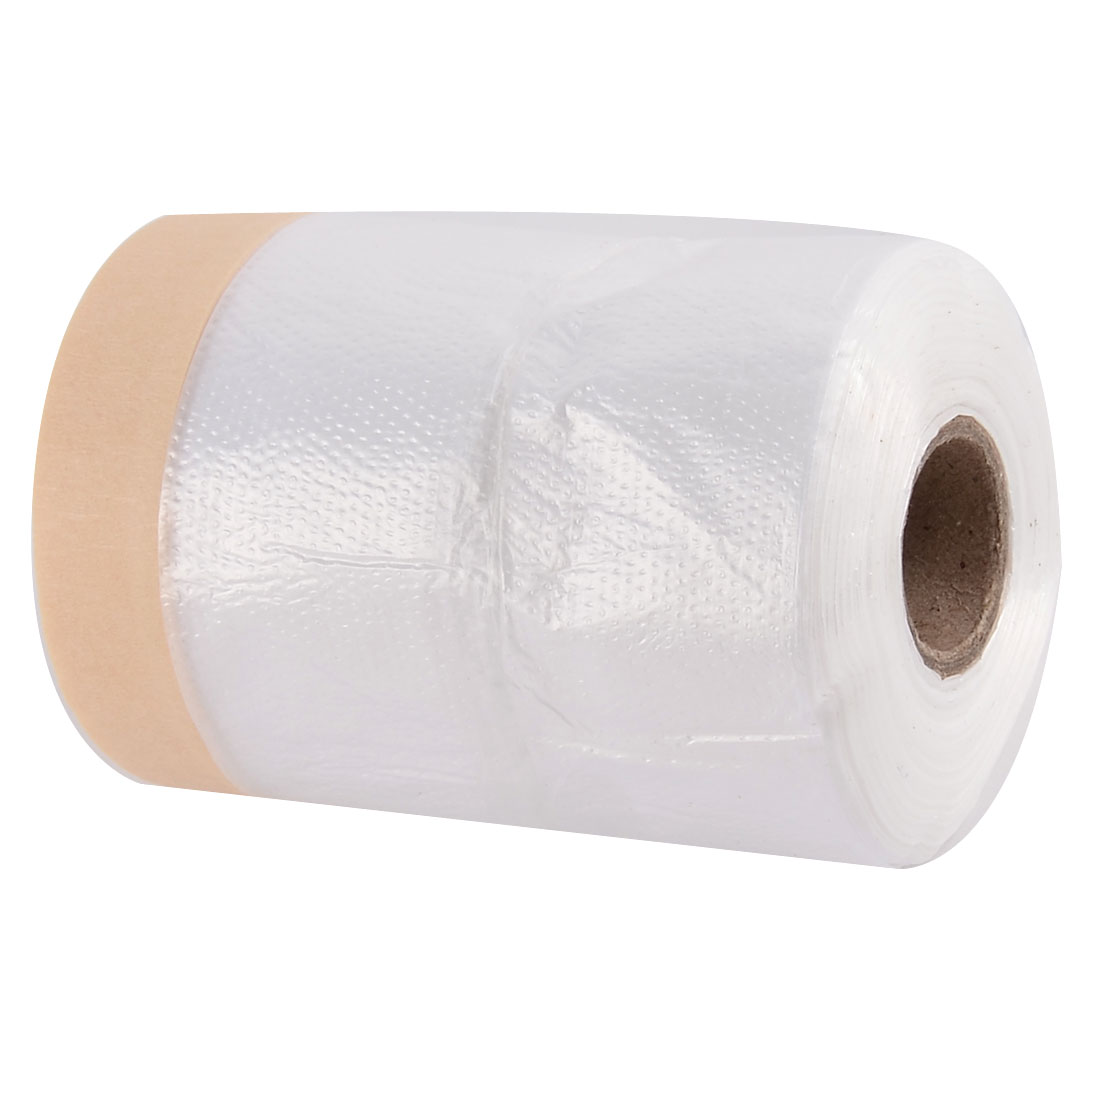 Car Furniture Pre-Taped Drop Film Masking Tape Protection Covering Cloth 30M Long